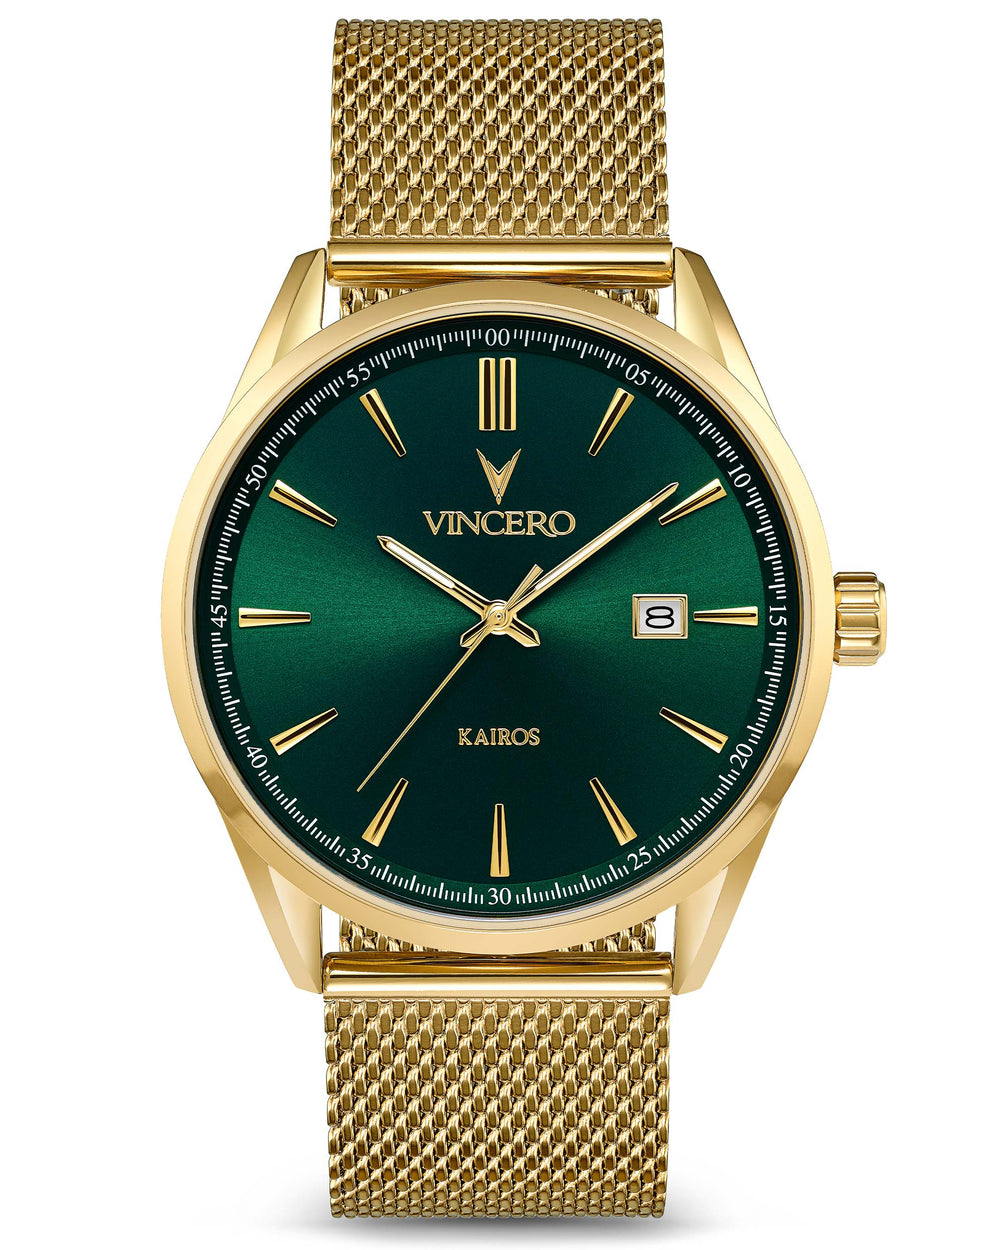 The Kairos Limited Release - Green/Gold